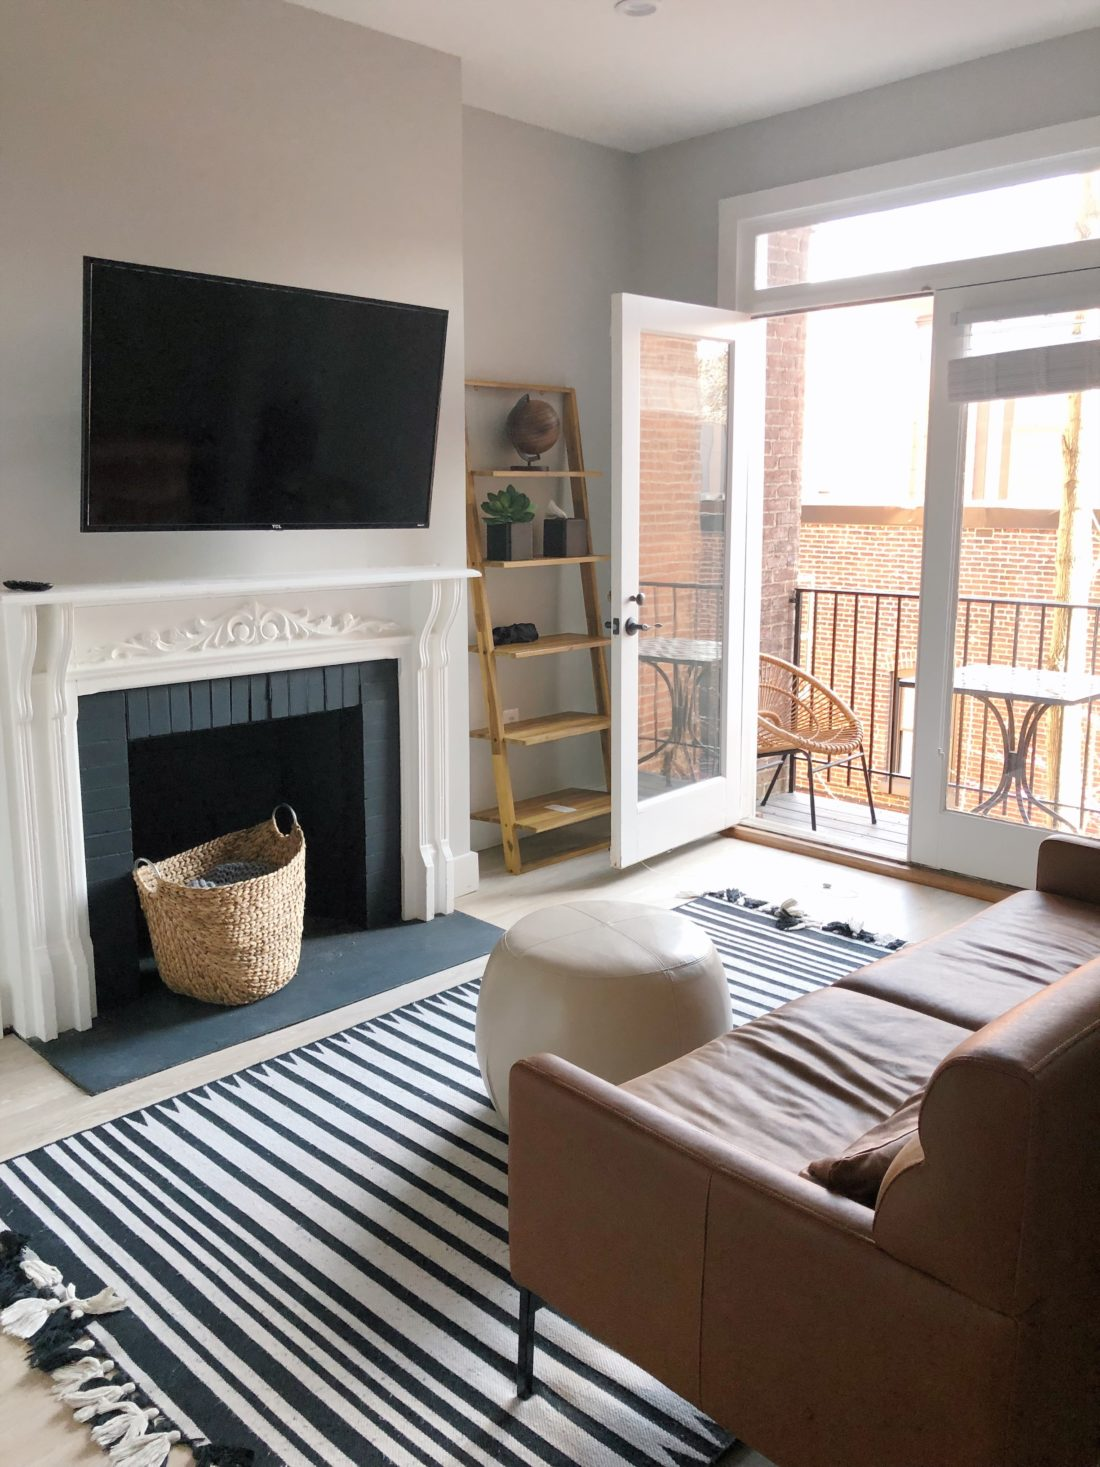 dupont circle washington dc airbnb apartment rental review